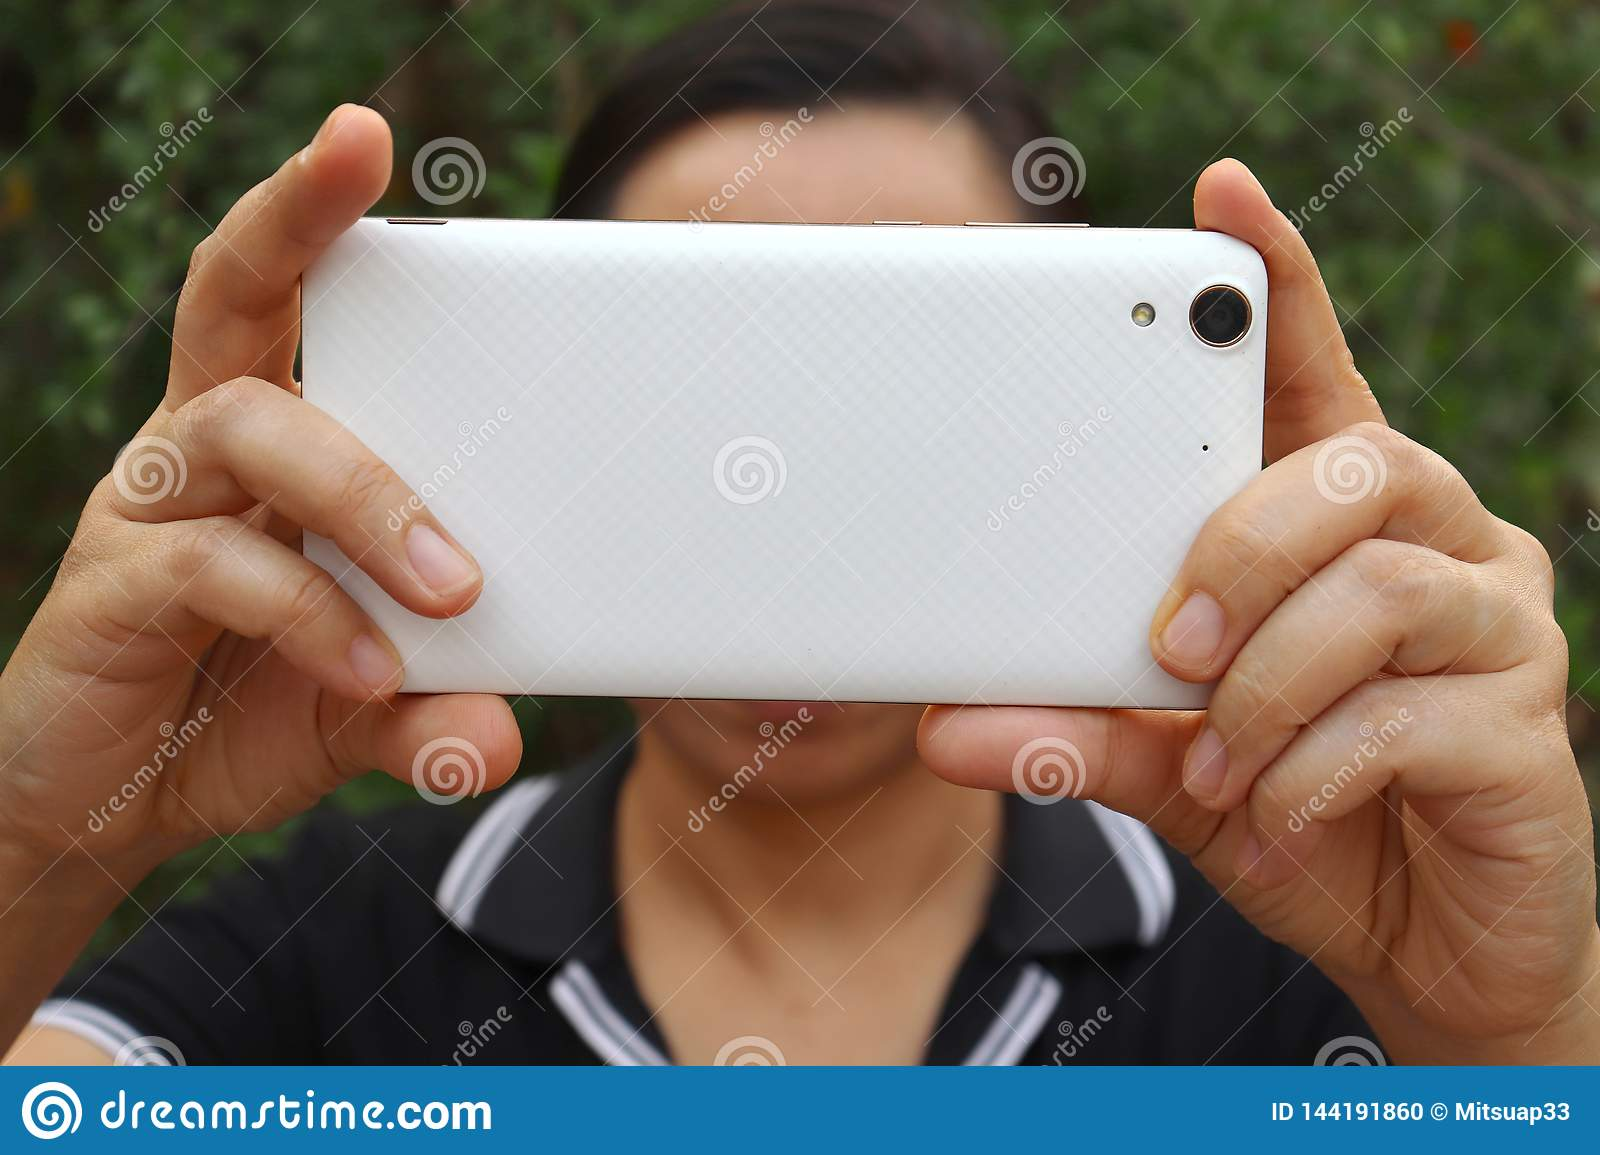 Asian woman holding and using smart phone show back side